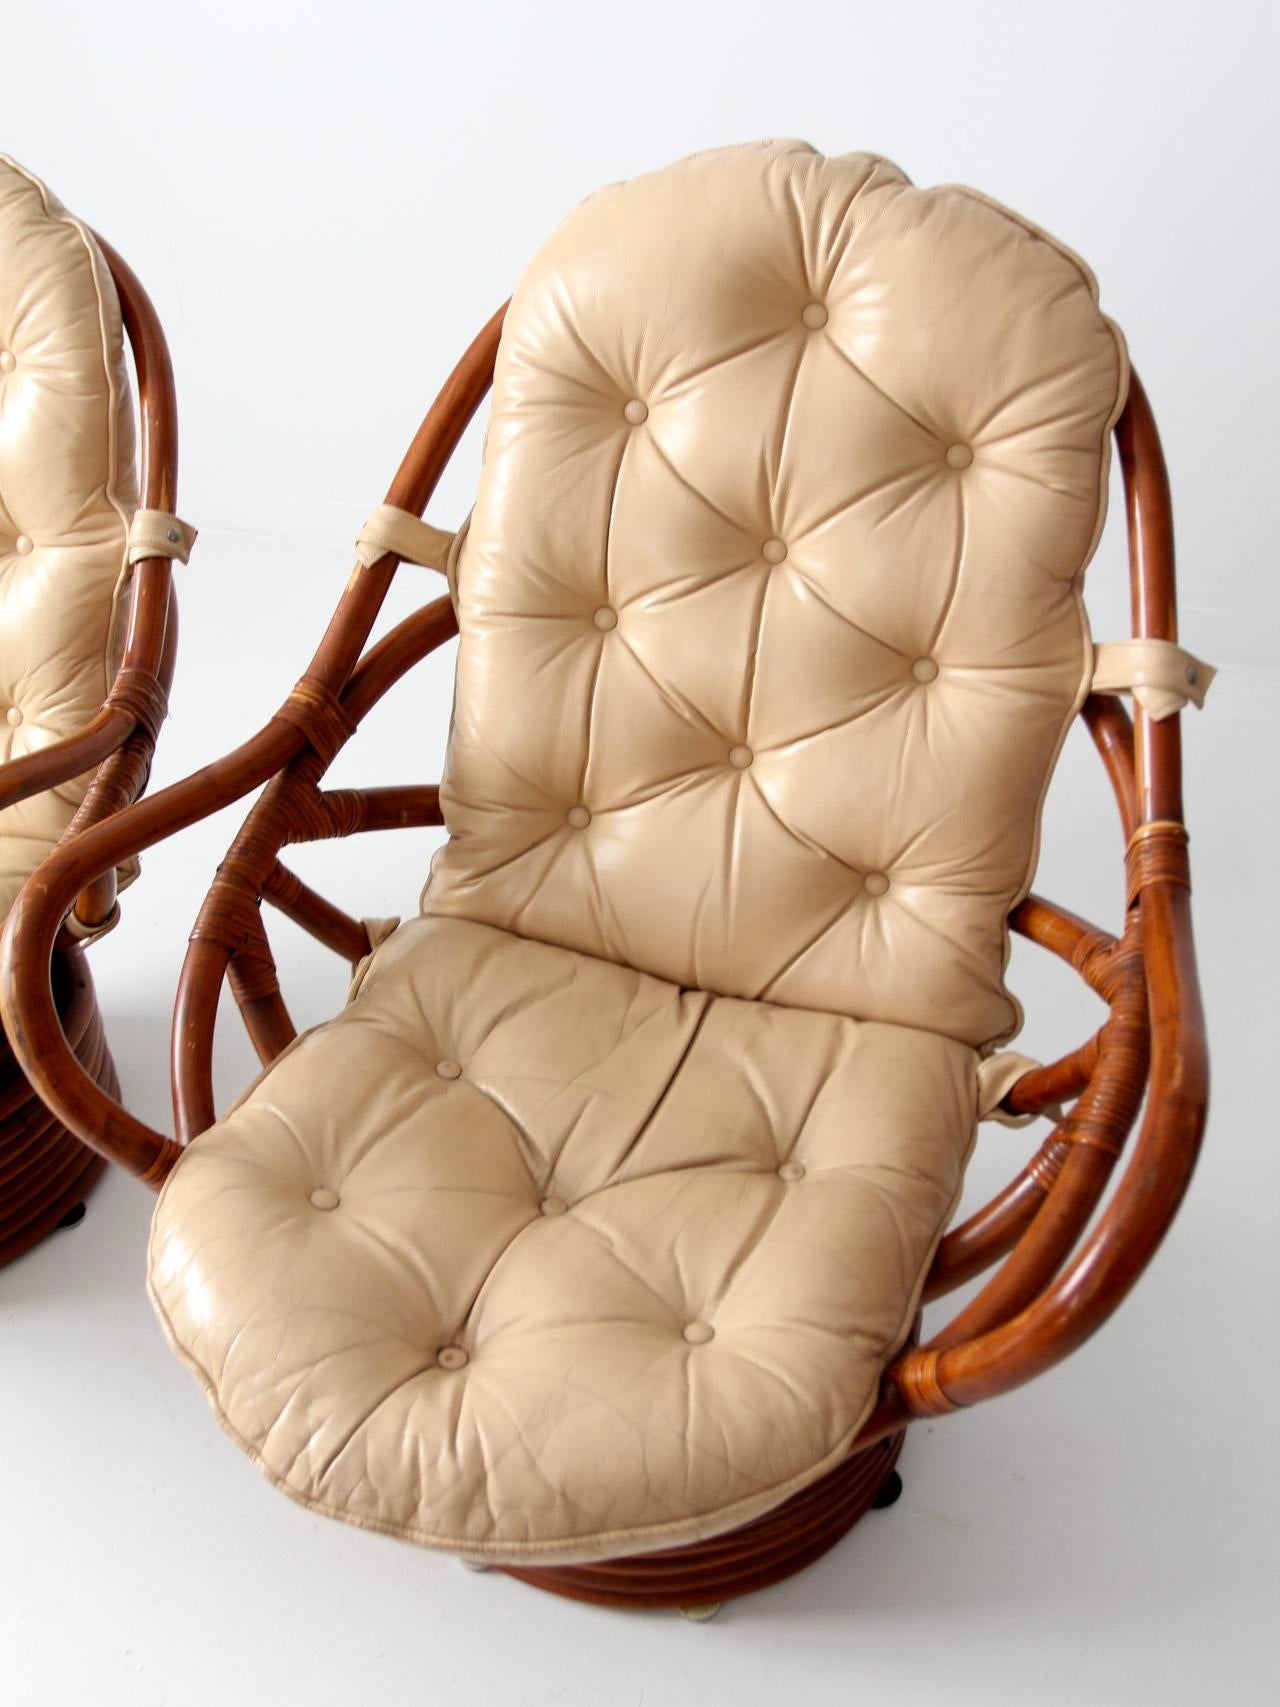 Mid Century Rattan Swivel Chair And Ottoman   Set Of 4 For Sale   Image